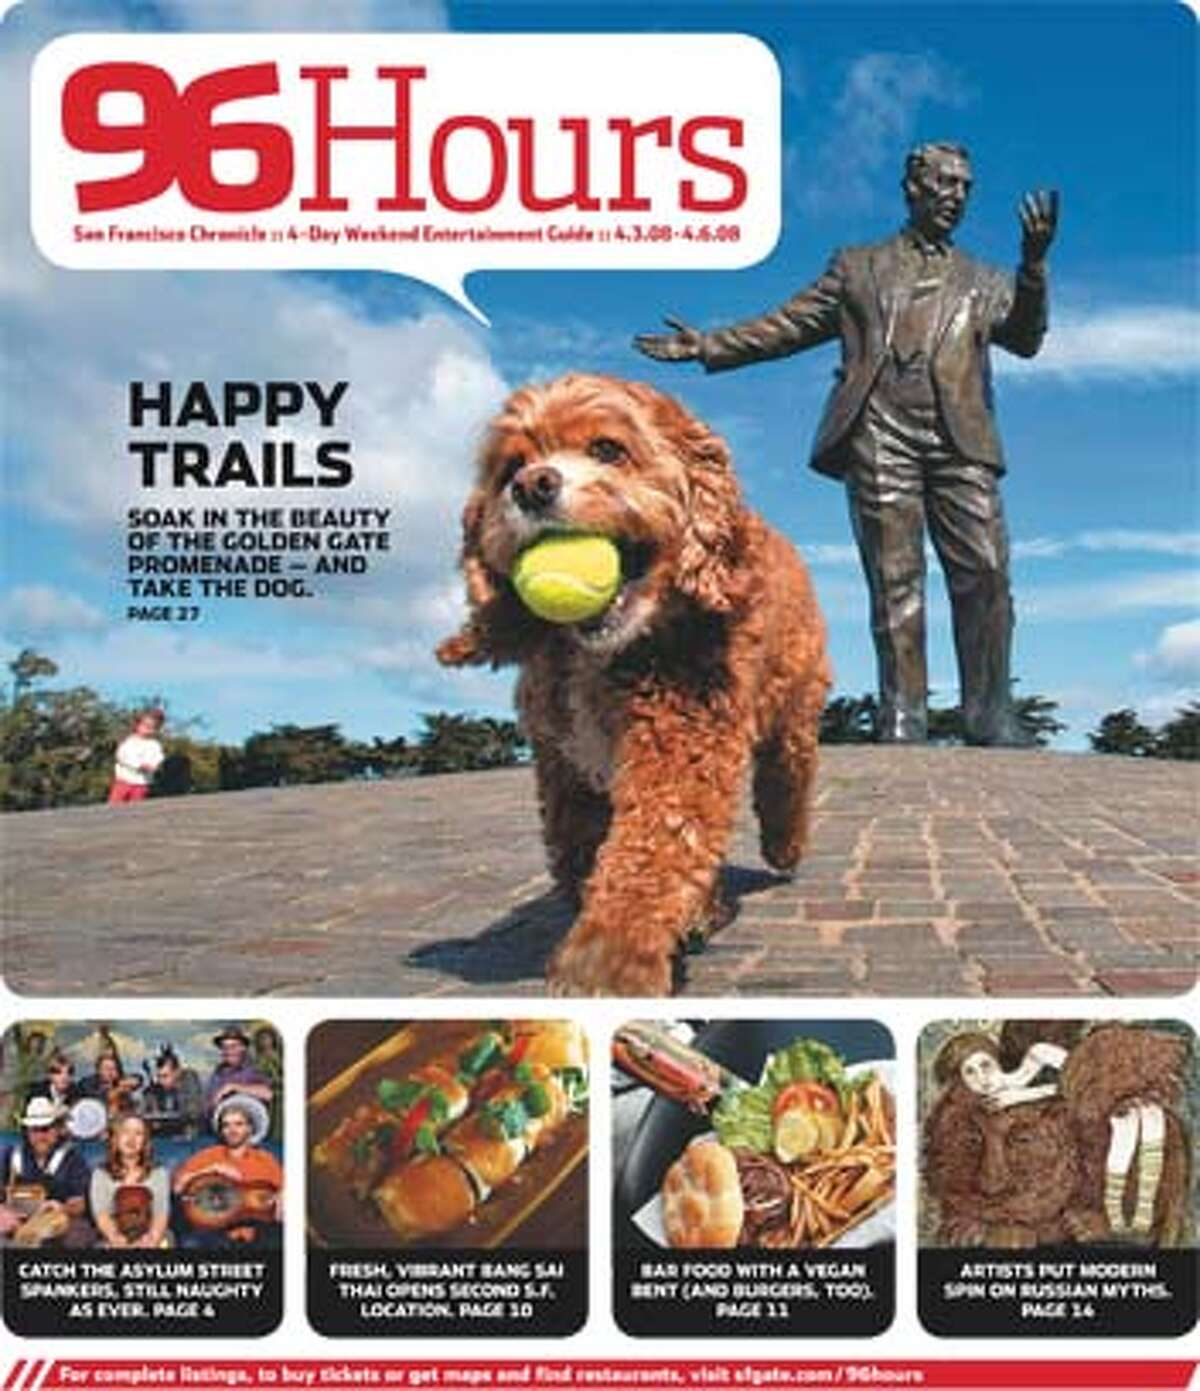 96 Hours cover: Happy Trails